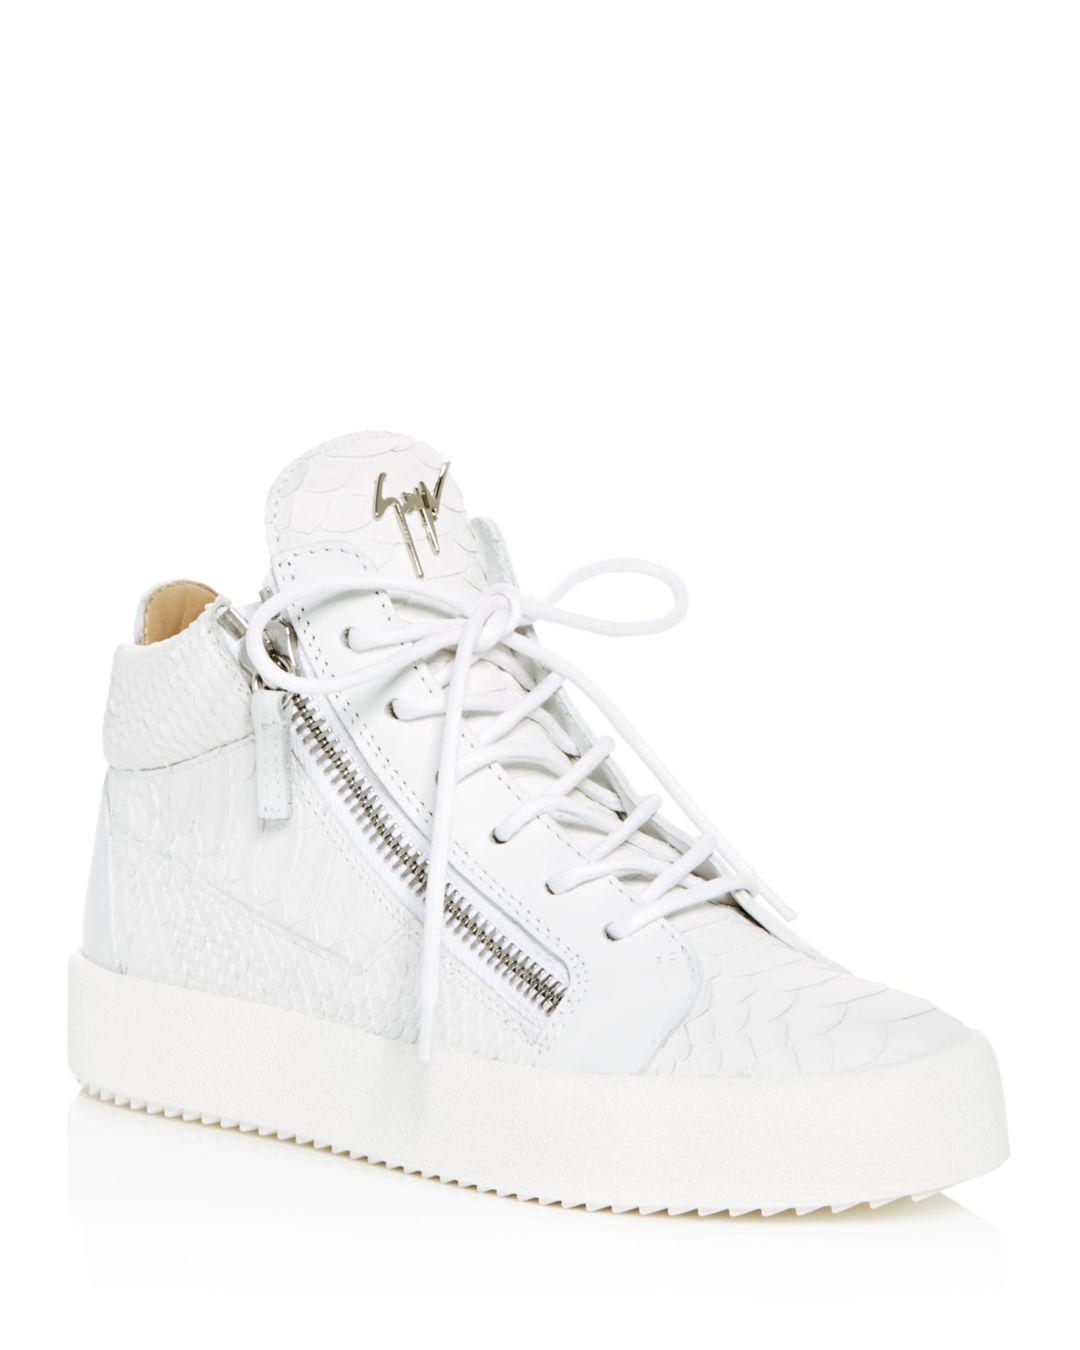 7633ed7f948af Giuseppe Zanotti. White Women s May London Snake   Croc Embossed Leather  High Top Sneakers